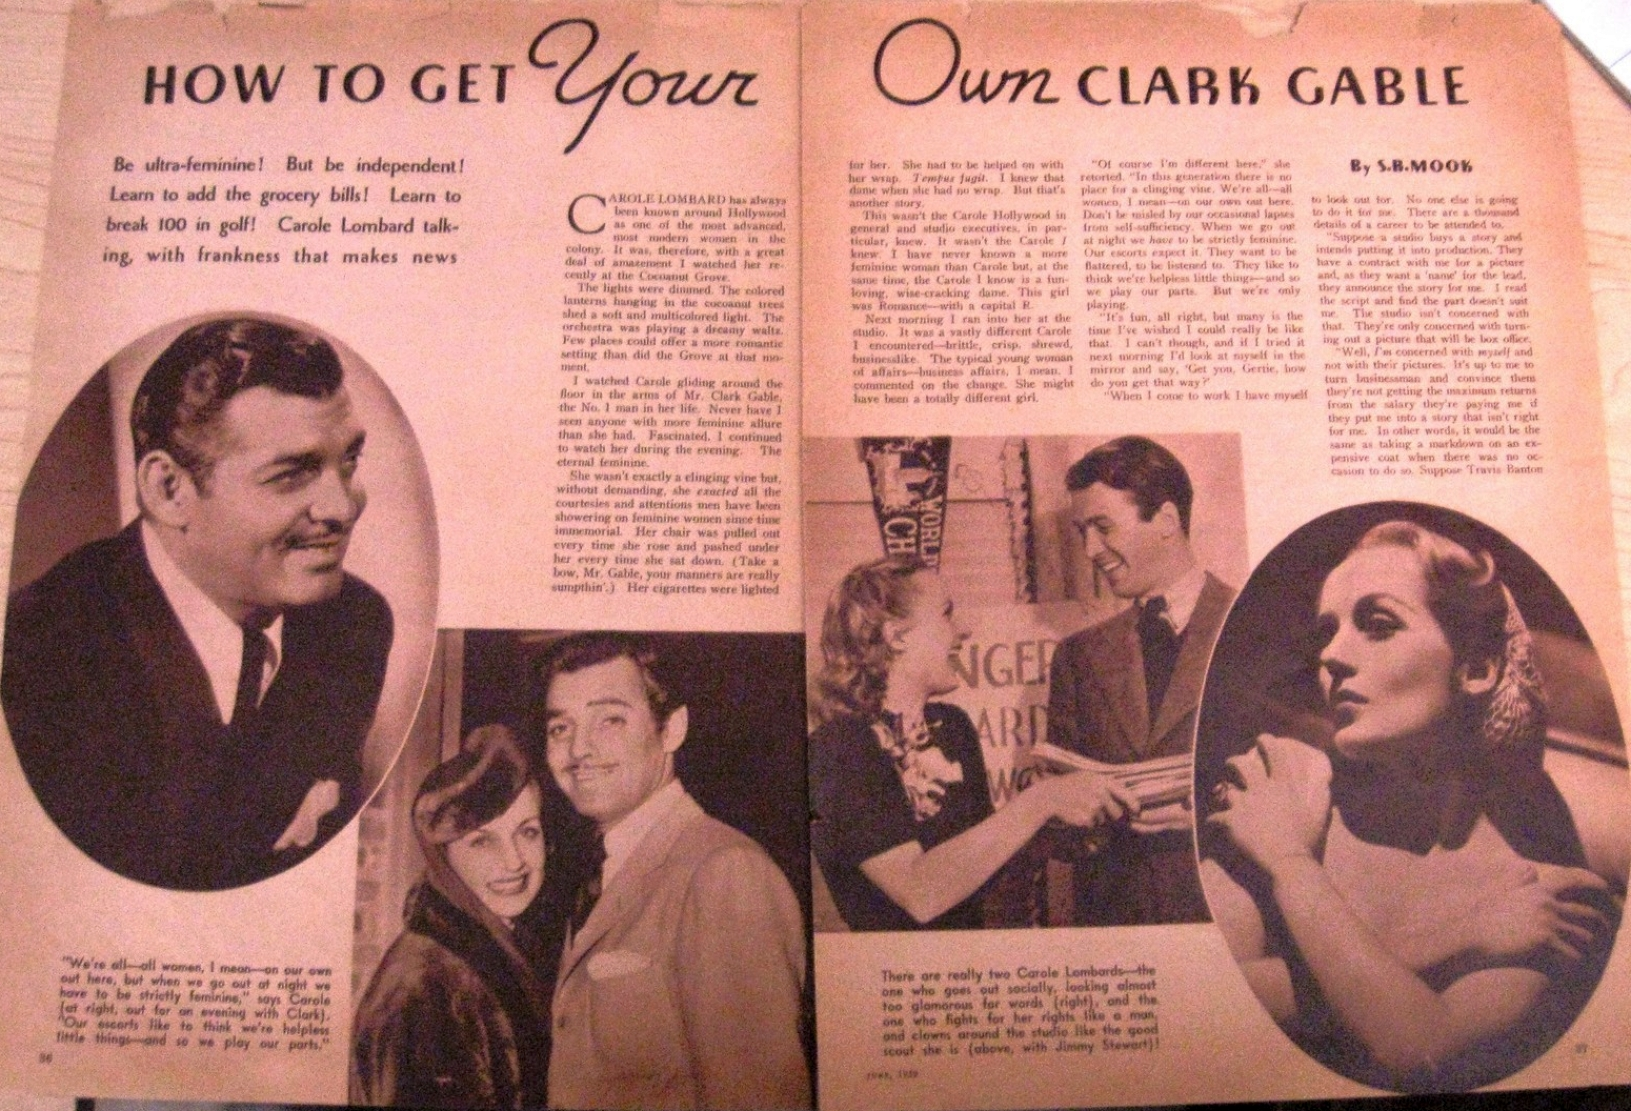 carole lombard movie mirror june 1939 how to get your own clark gable large